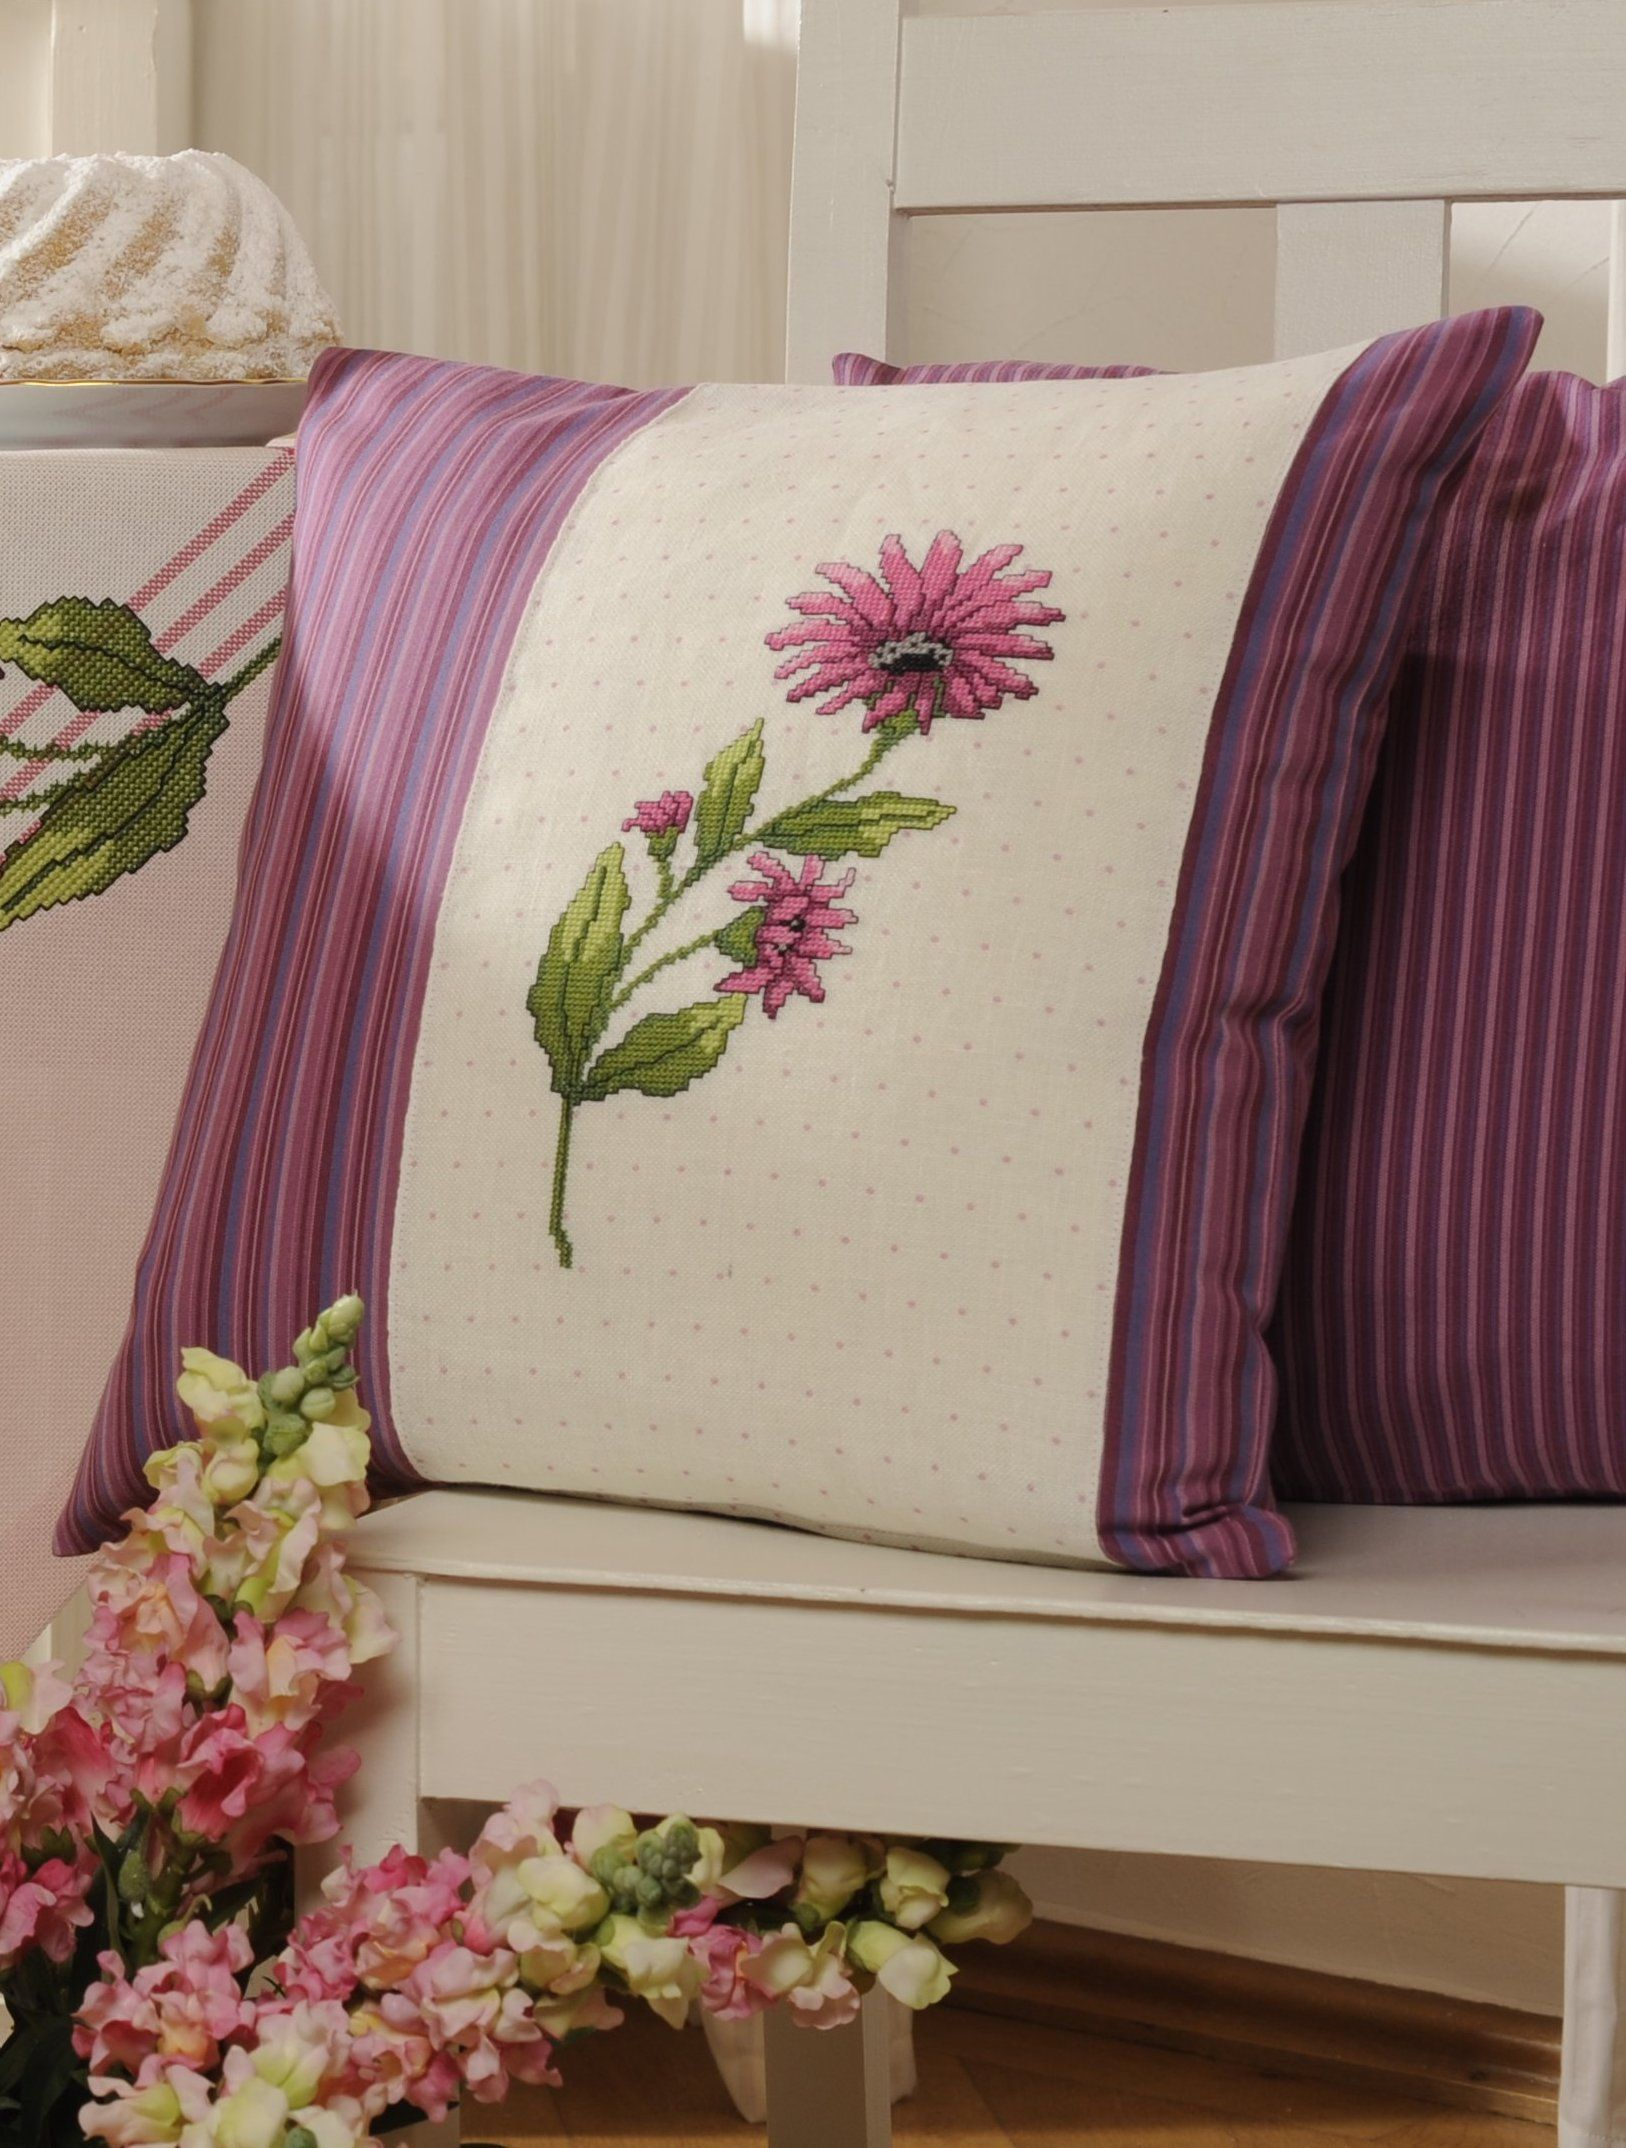 Kissen für den gartenstuhl design gerlinde gebert pillows